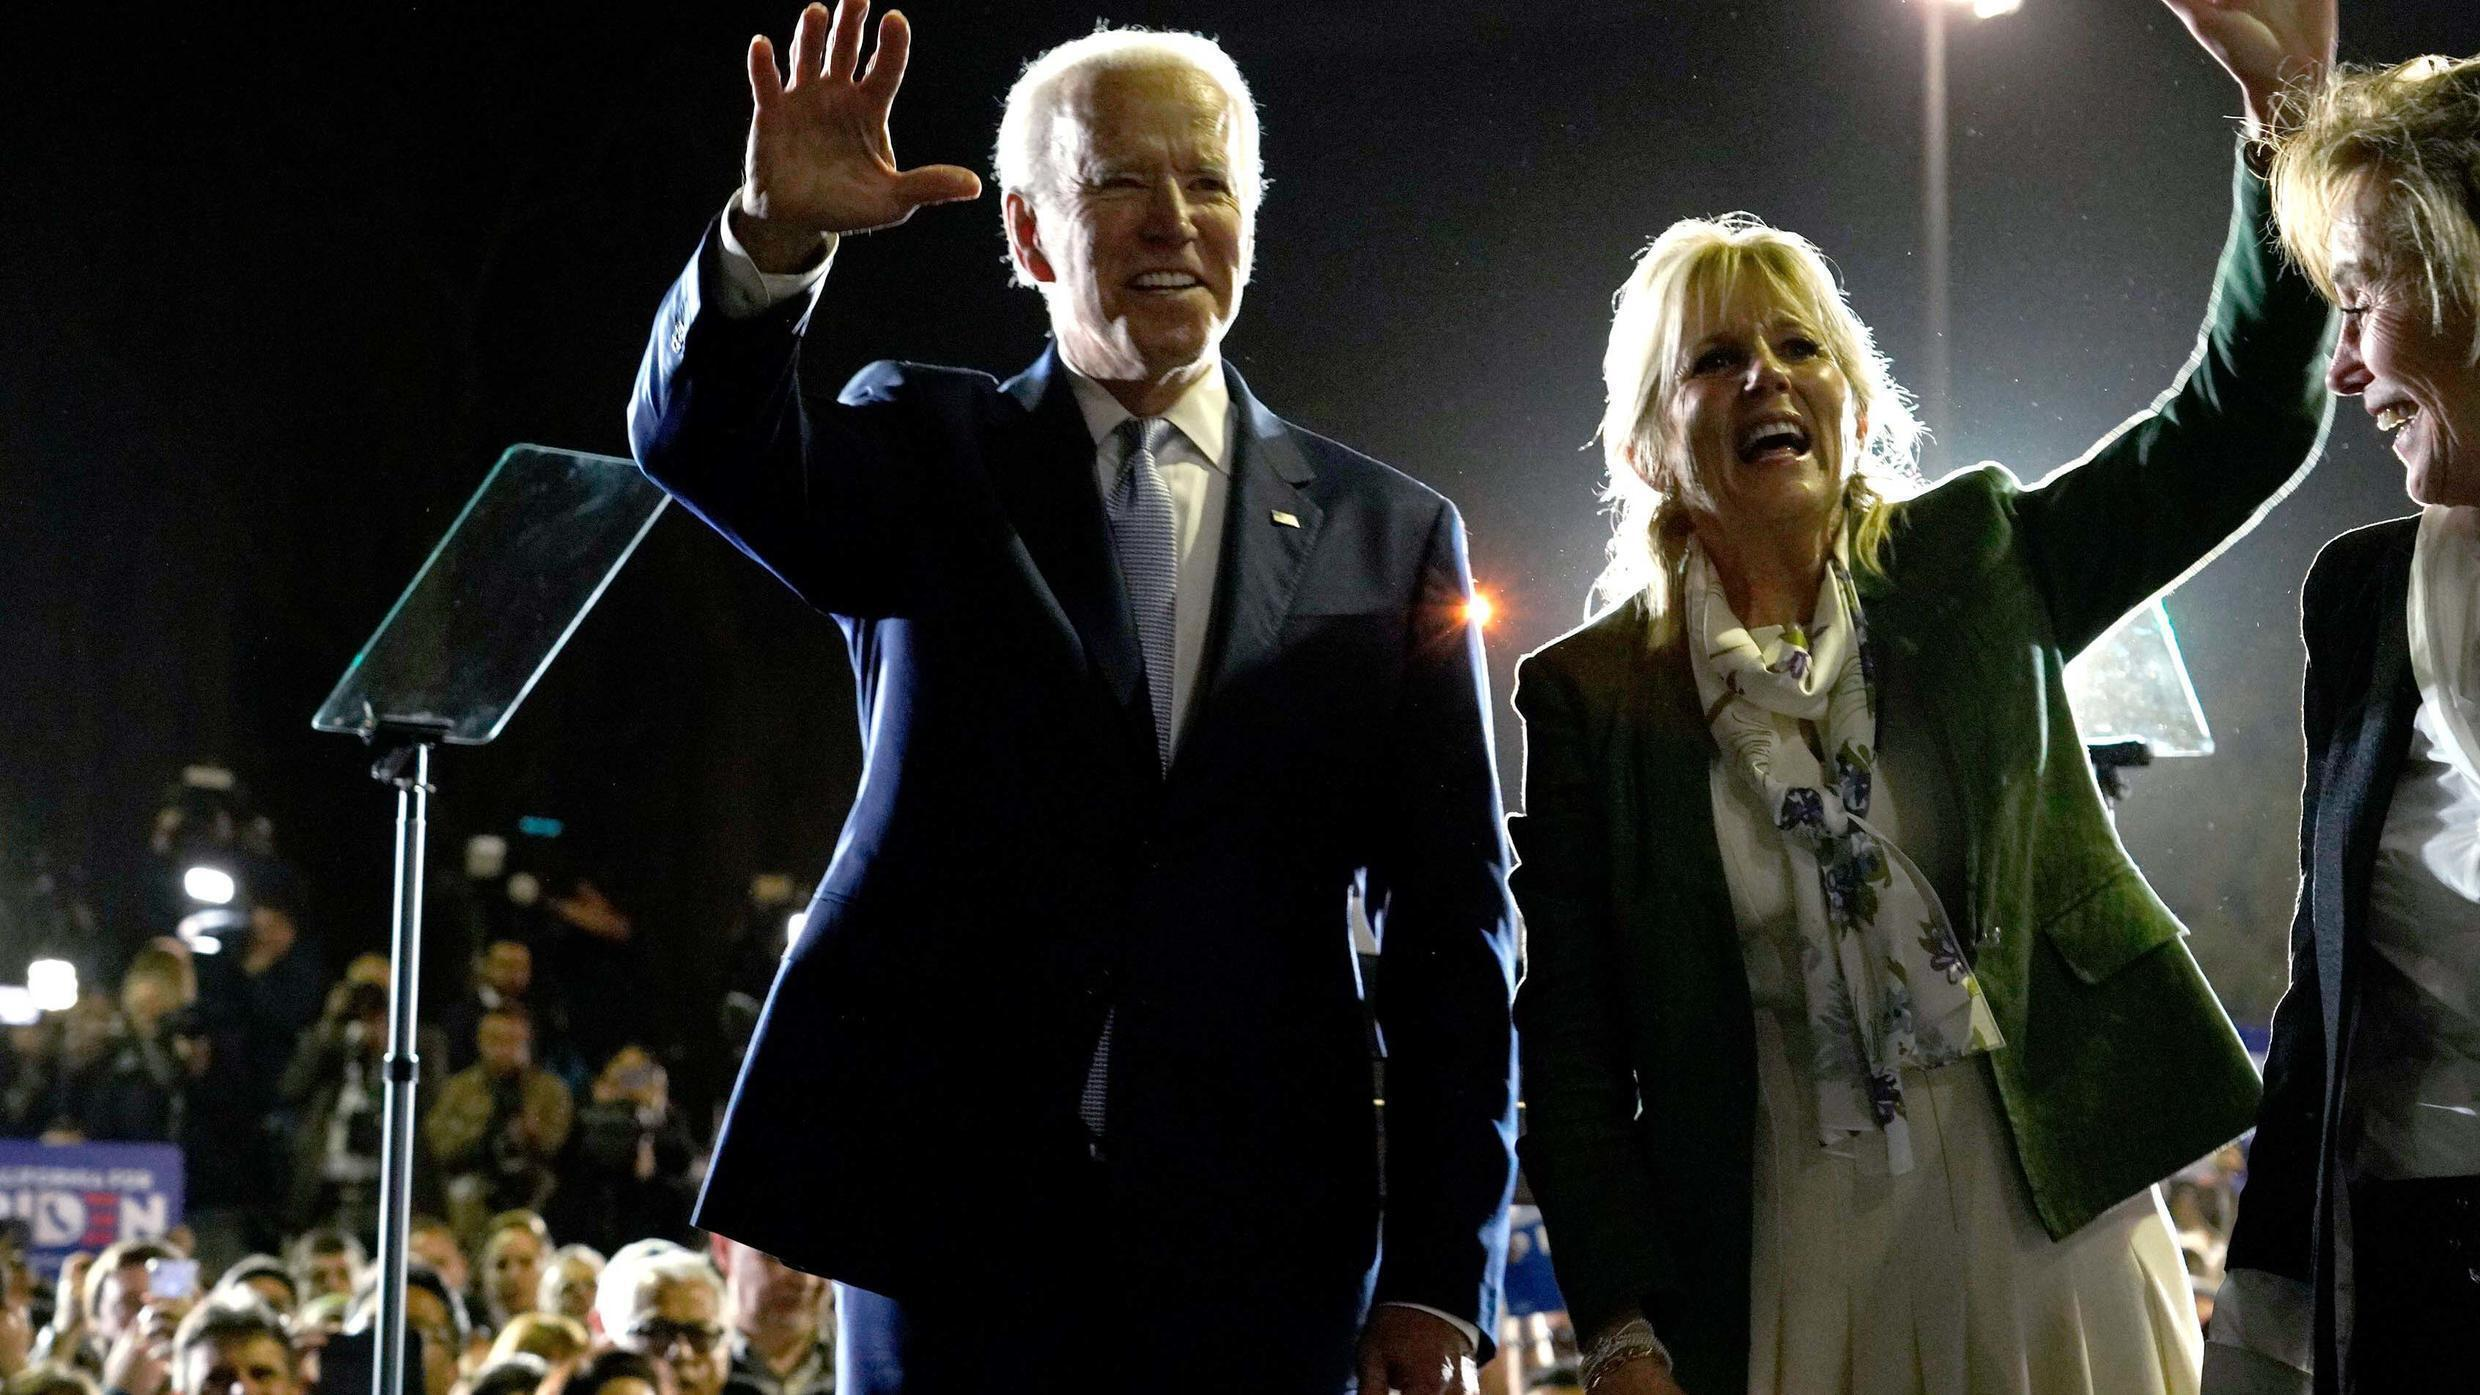 Democratic U.S. presidential candidate and former Vice President Joe Biden waves with his wife Jill at his Super Tuesday night rally in Los Angeles, California, U.S., March 3, 2020.